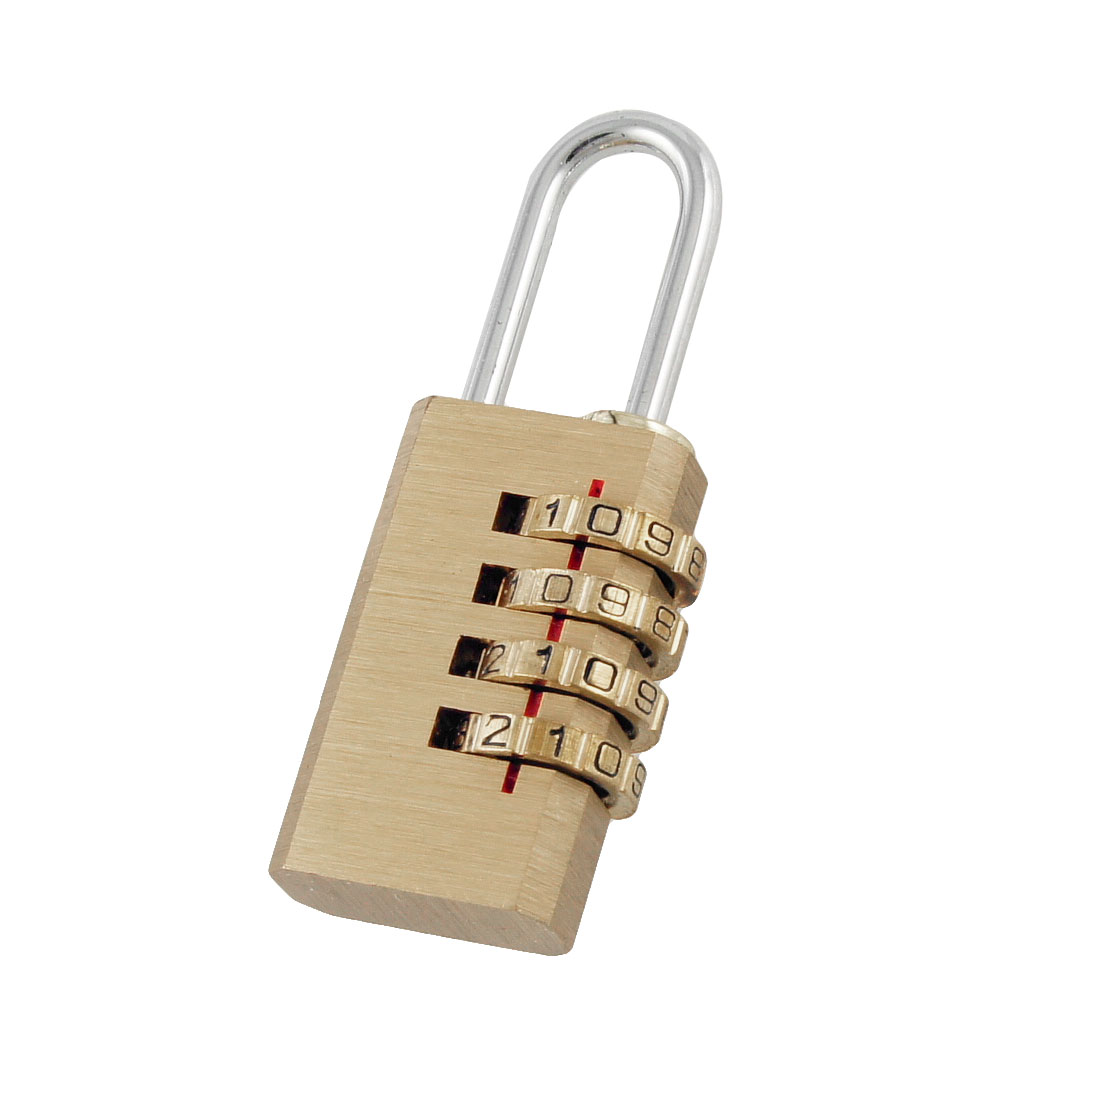 Gold Tone Digital Resettable Safety Combination Code Password Lock